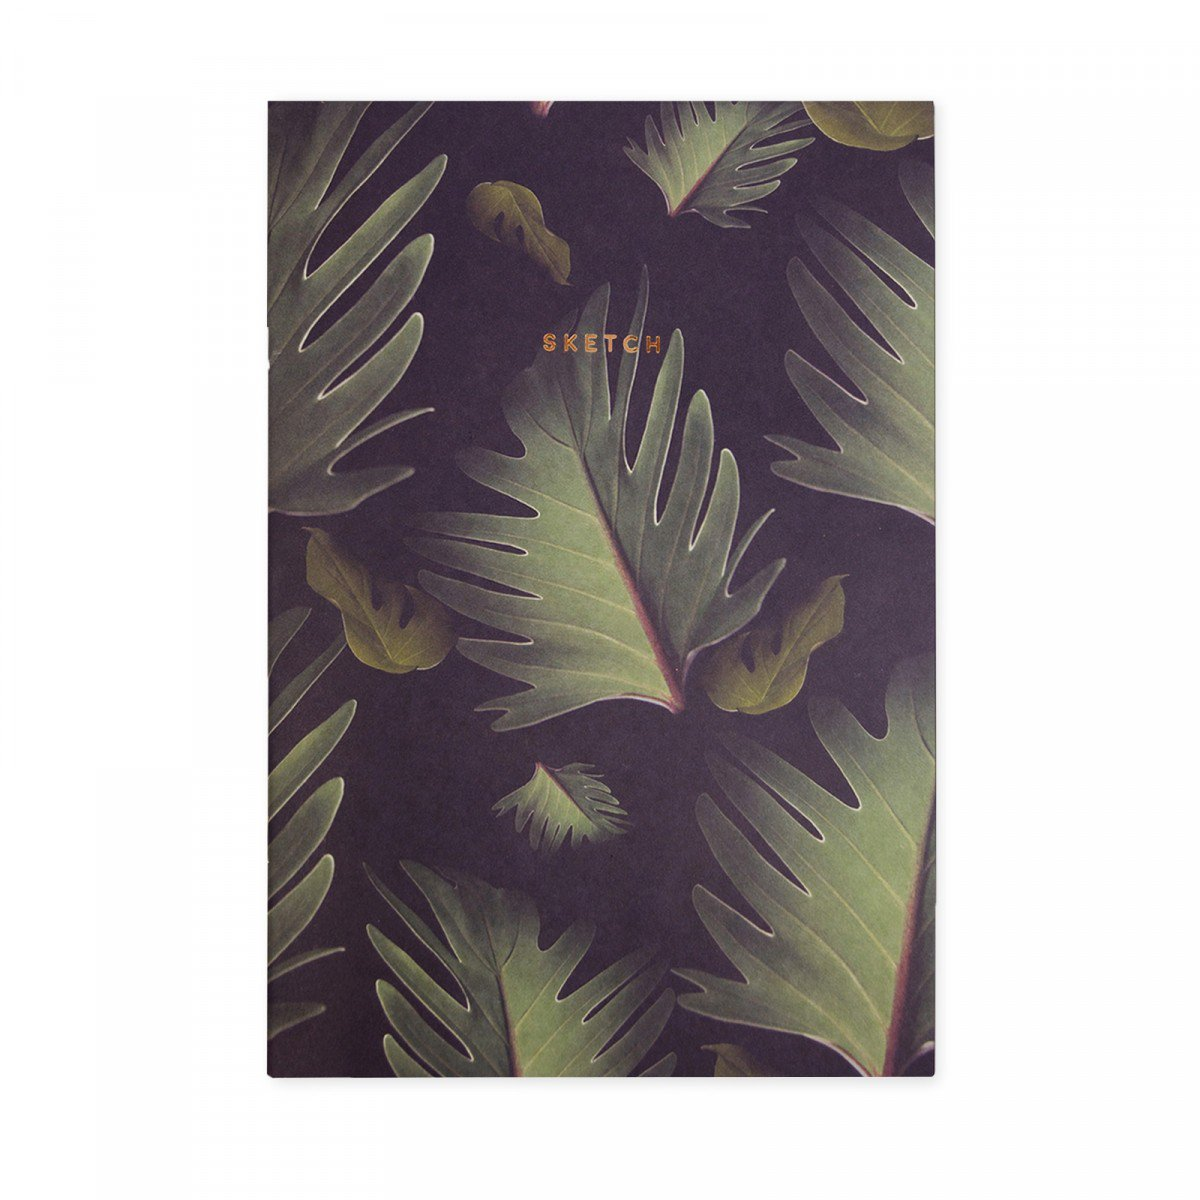 aw-s-002-1826_dark_palm_a4ish_notebook.jpg